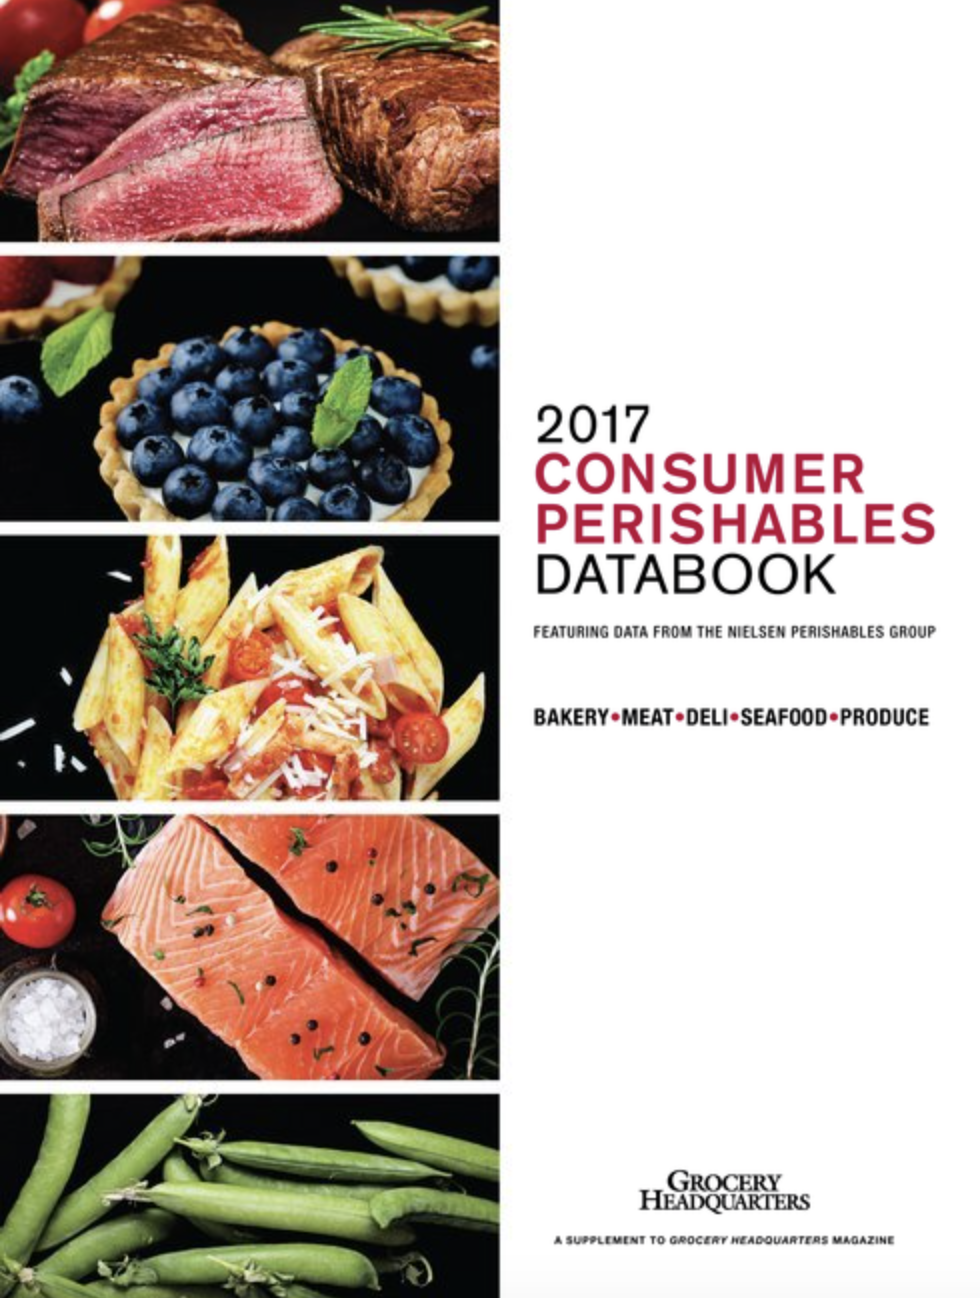 Winsight Grocery Business Magazine Consumer Perishables 2017 Issue